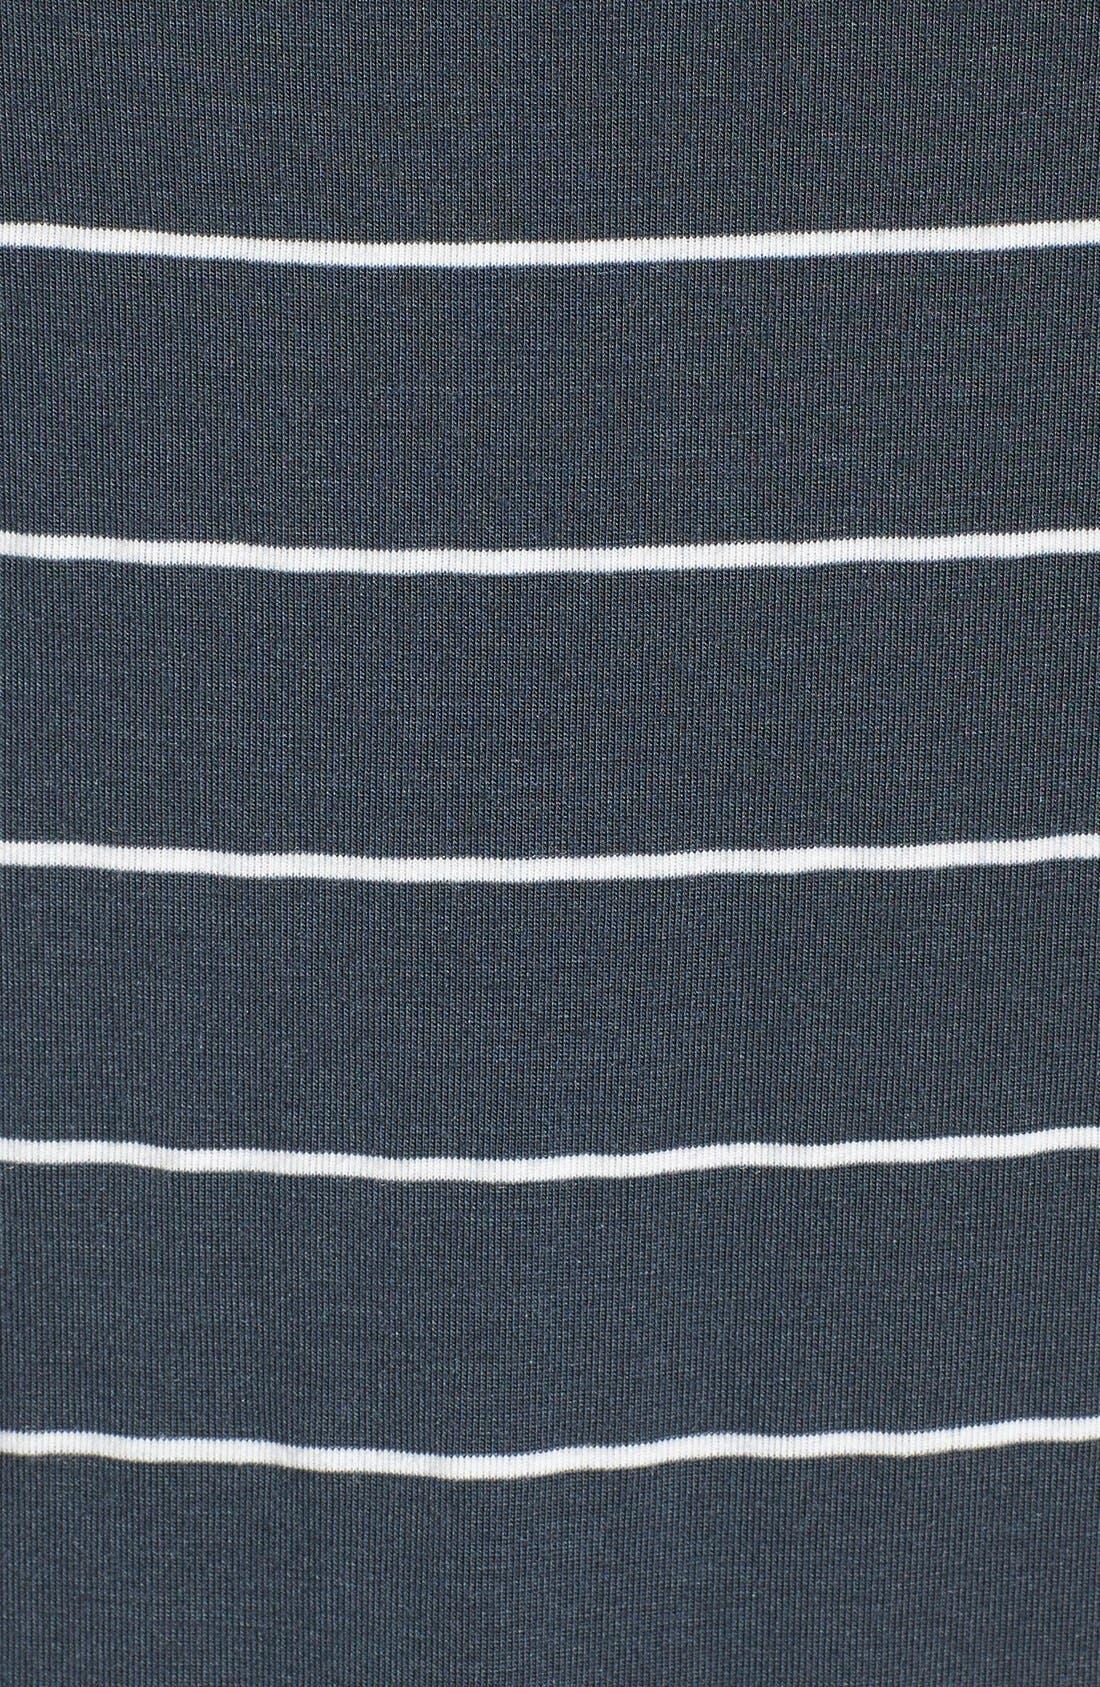 Alternate Image 5  - Volcom 'Dark Crystal' Stripe Tee